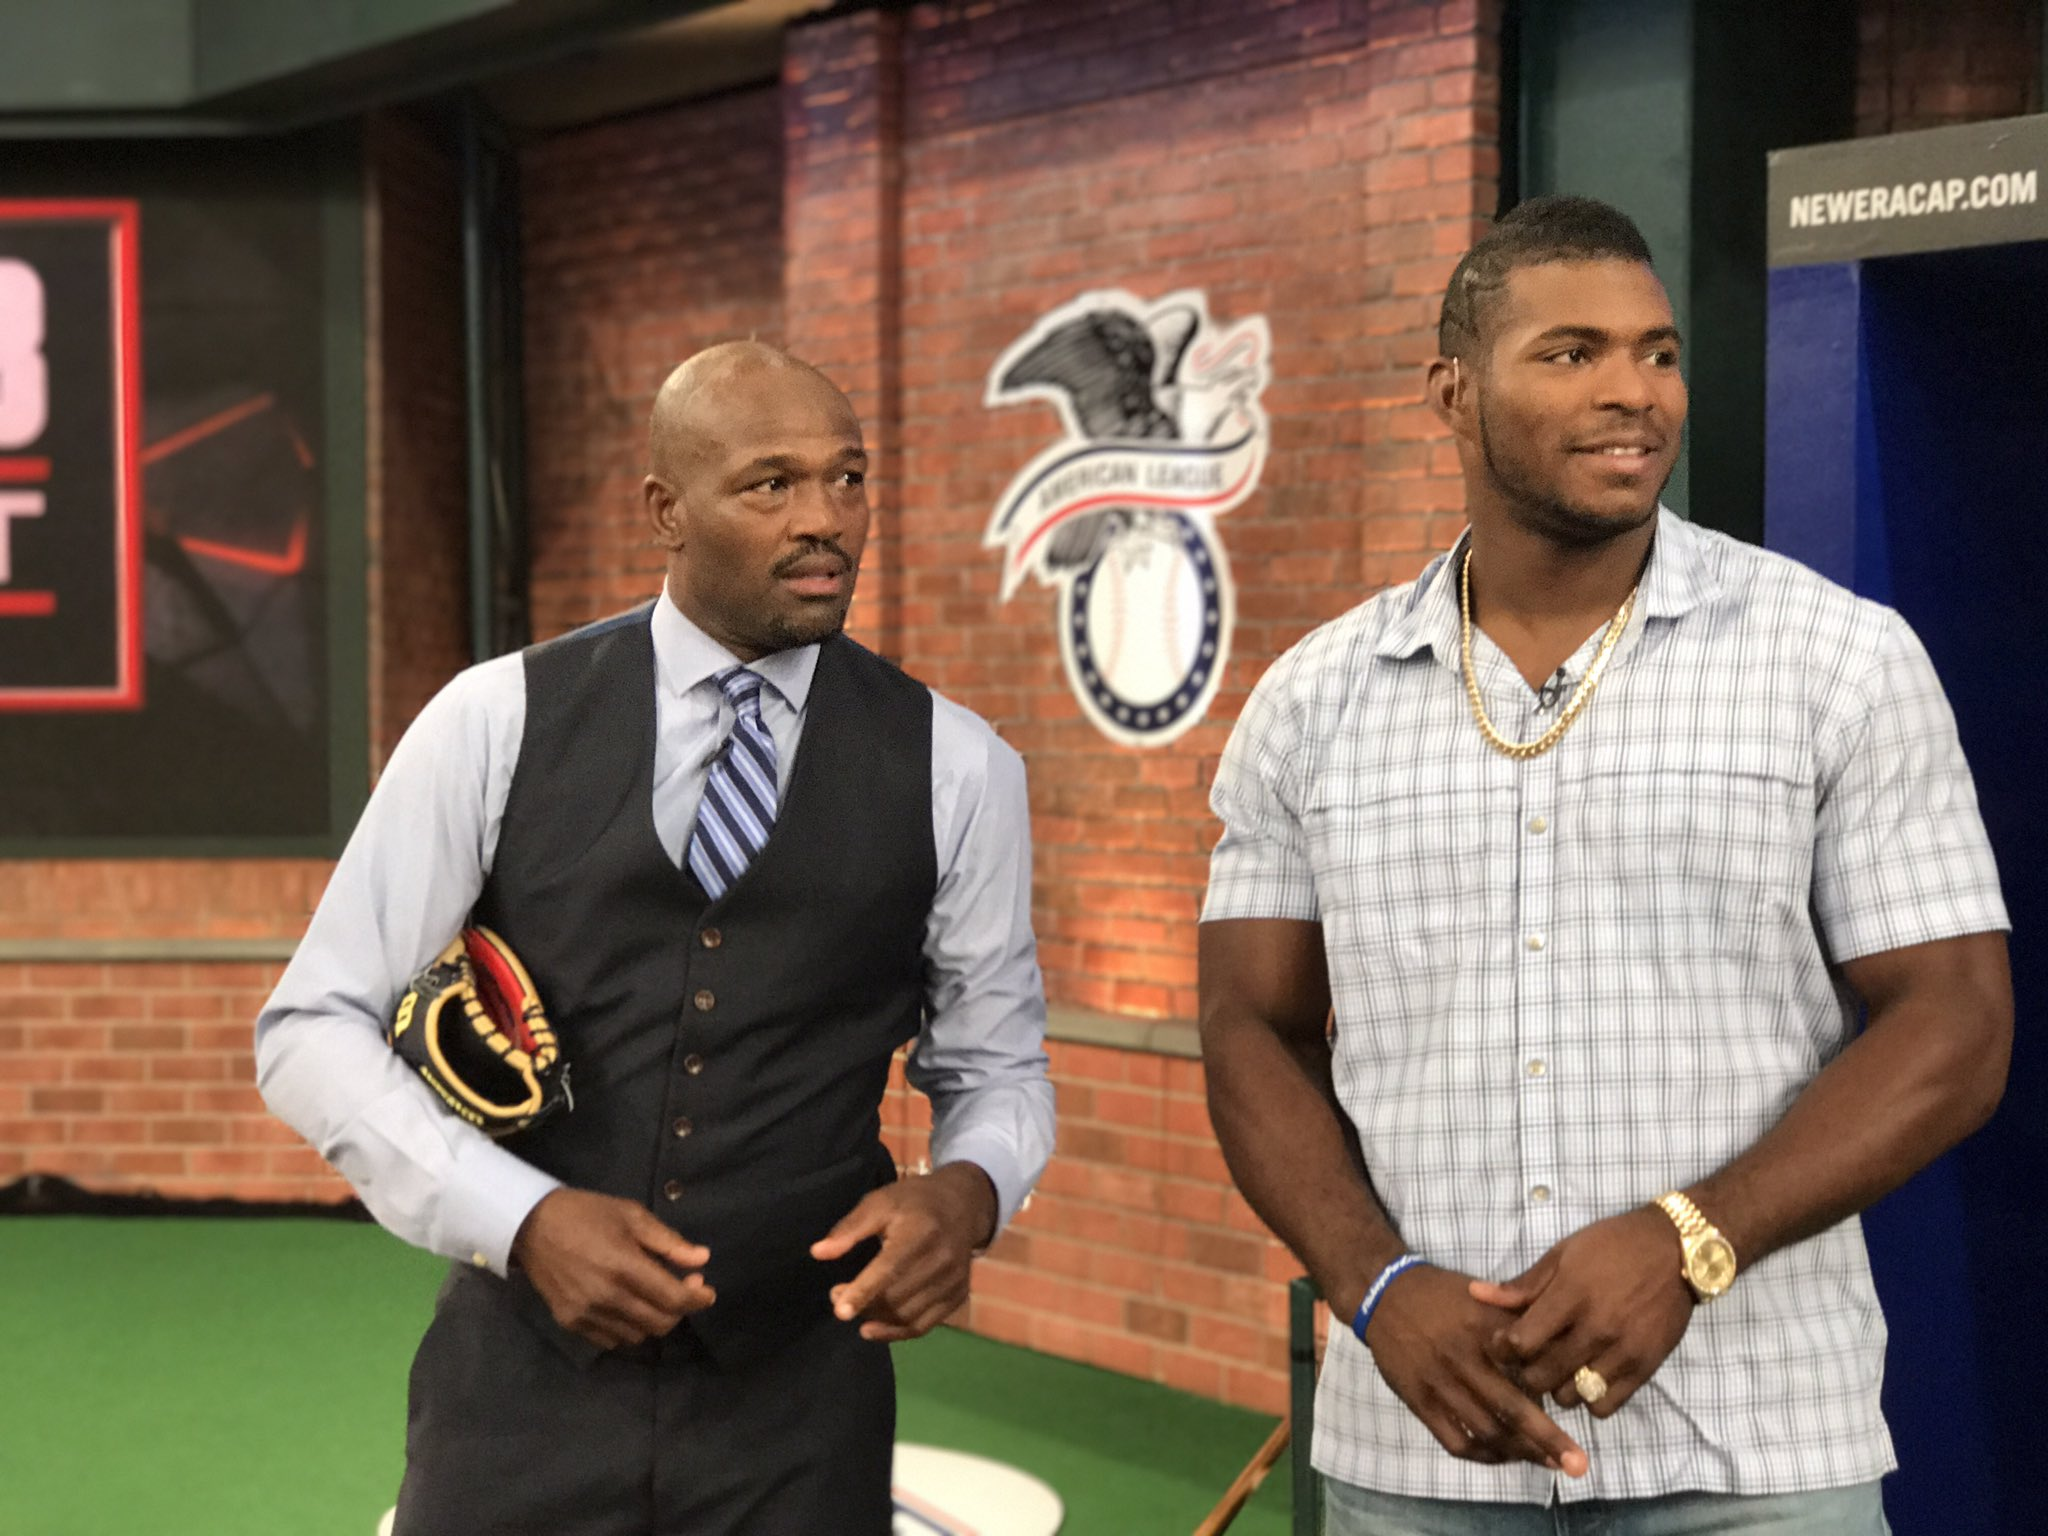 He's here! @YasielPuig #MLBTonight https://t.co/VCDsCK6Cge